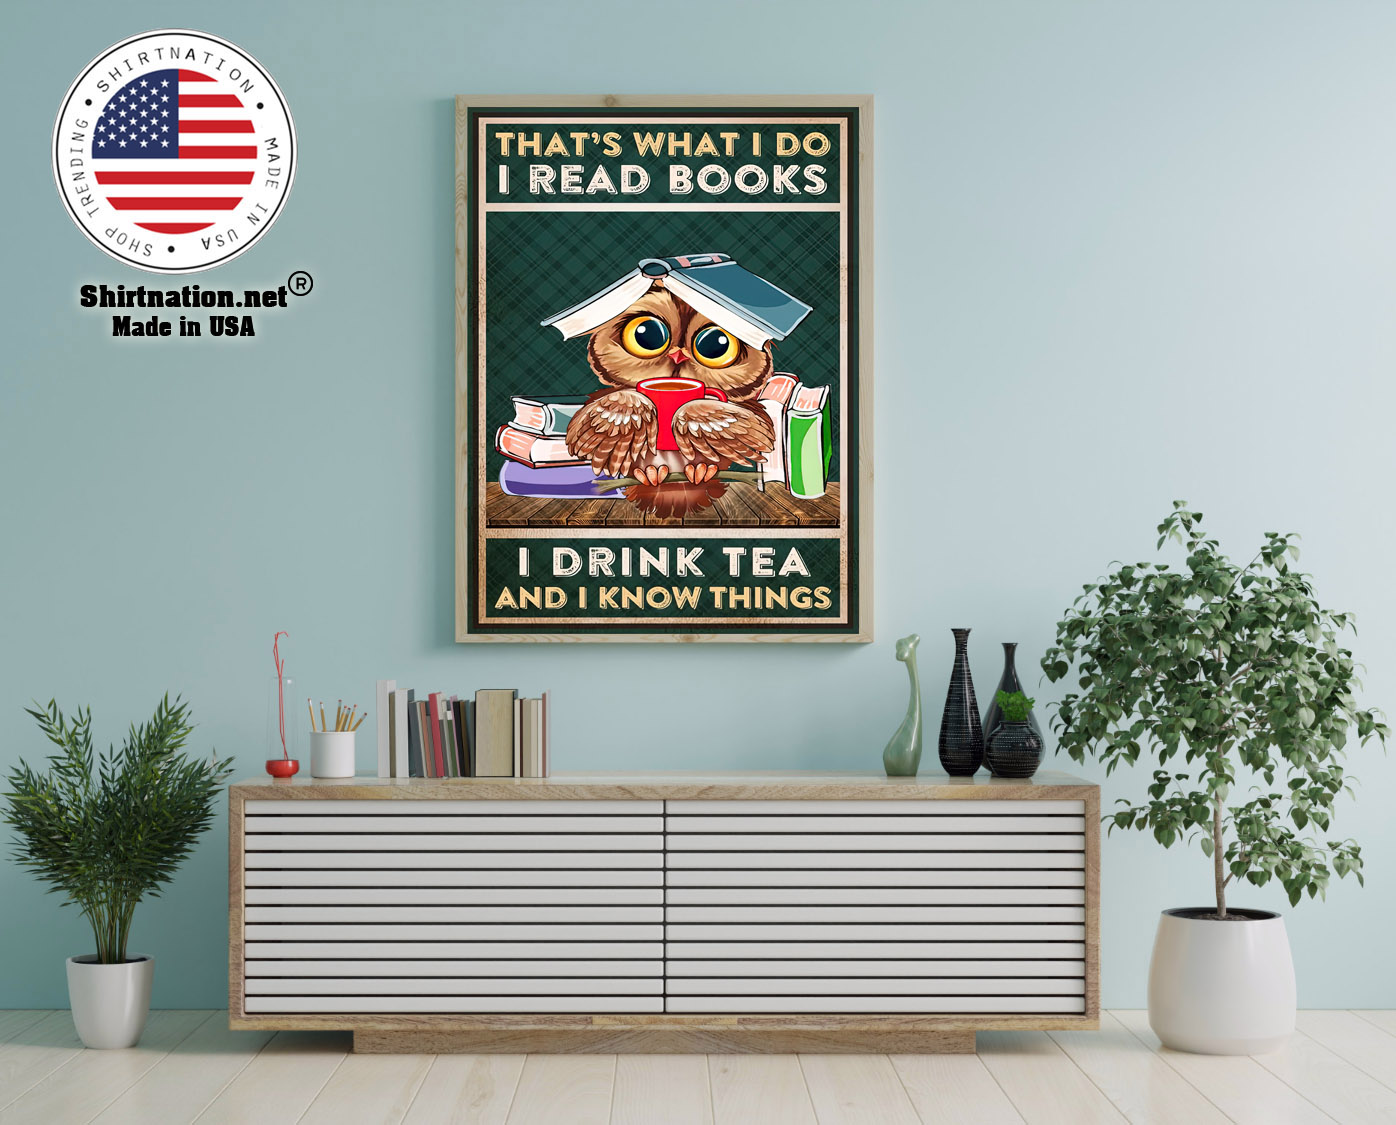 Thats what I do I read books I drink tea and I know things poster 12